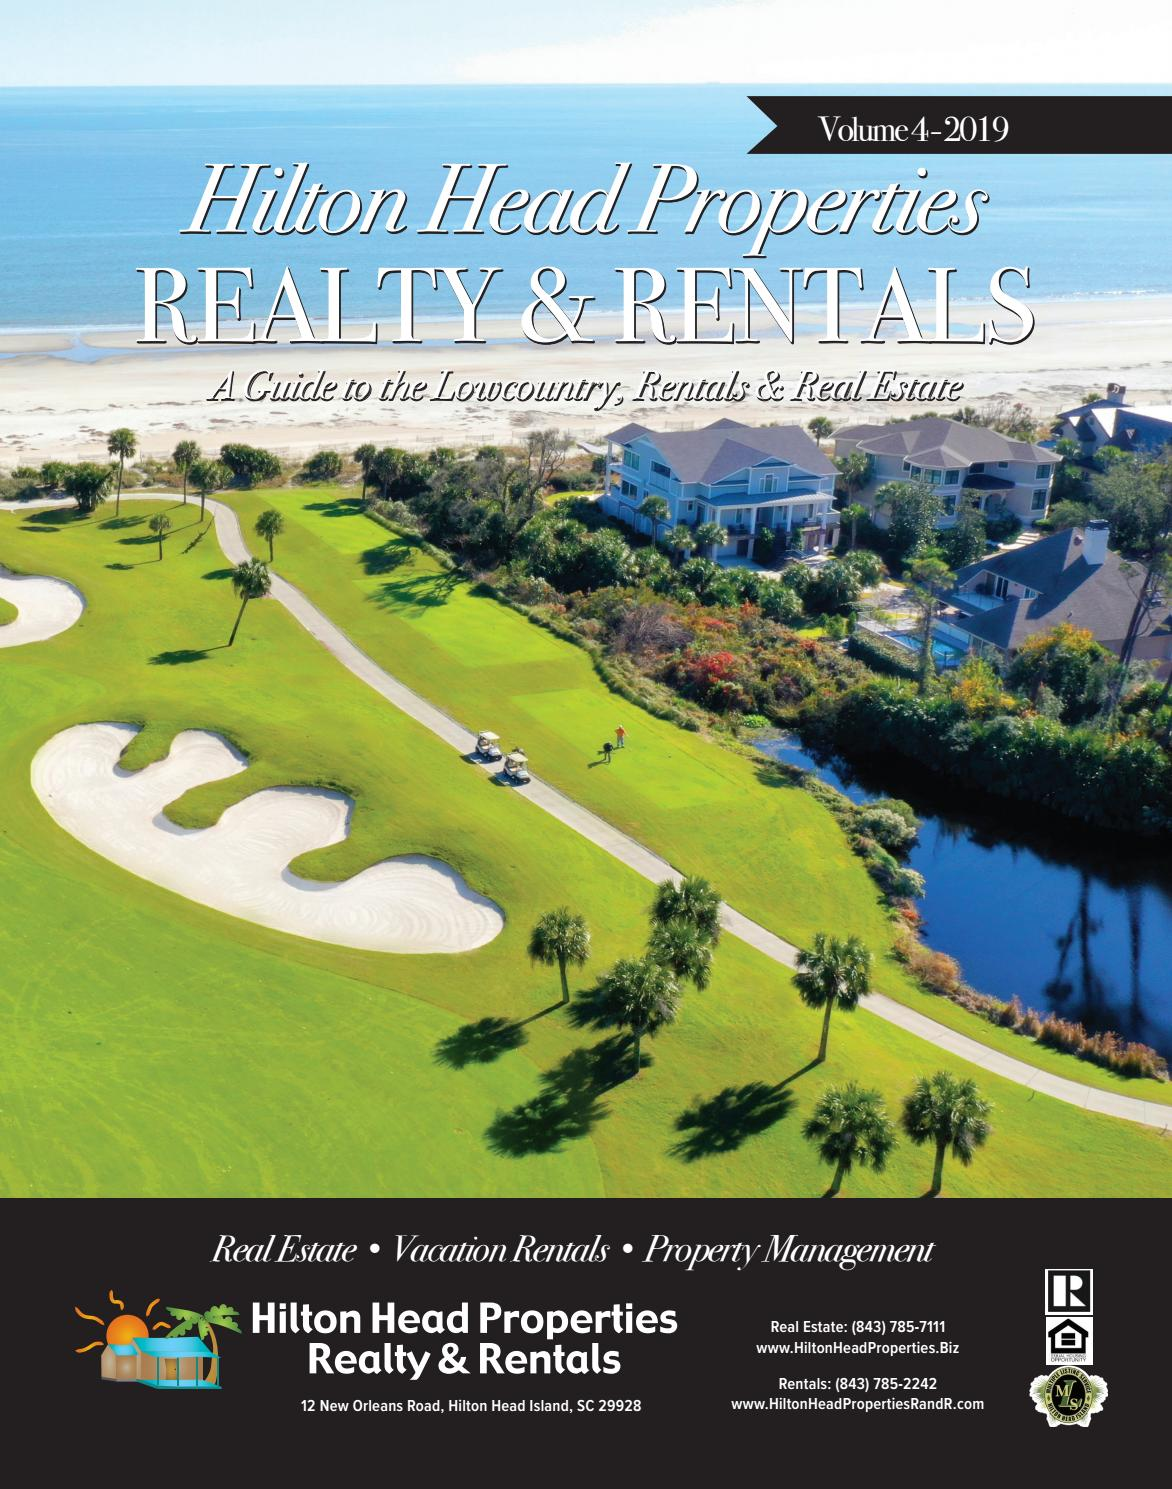 Hilton Head Properties Realty & Rentals: Guide to the